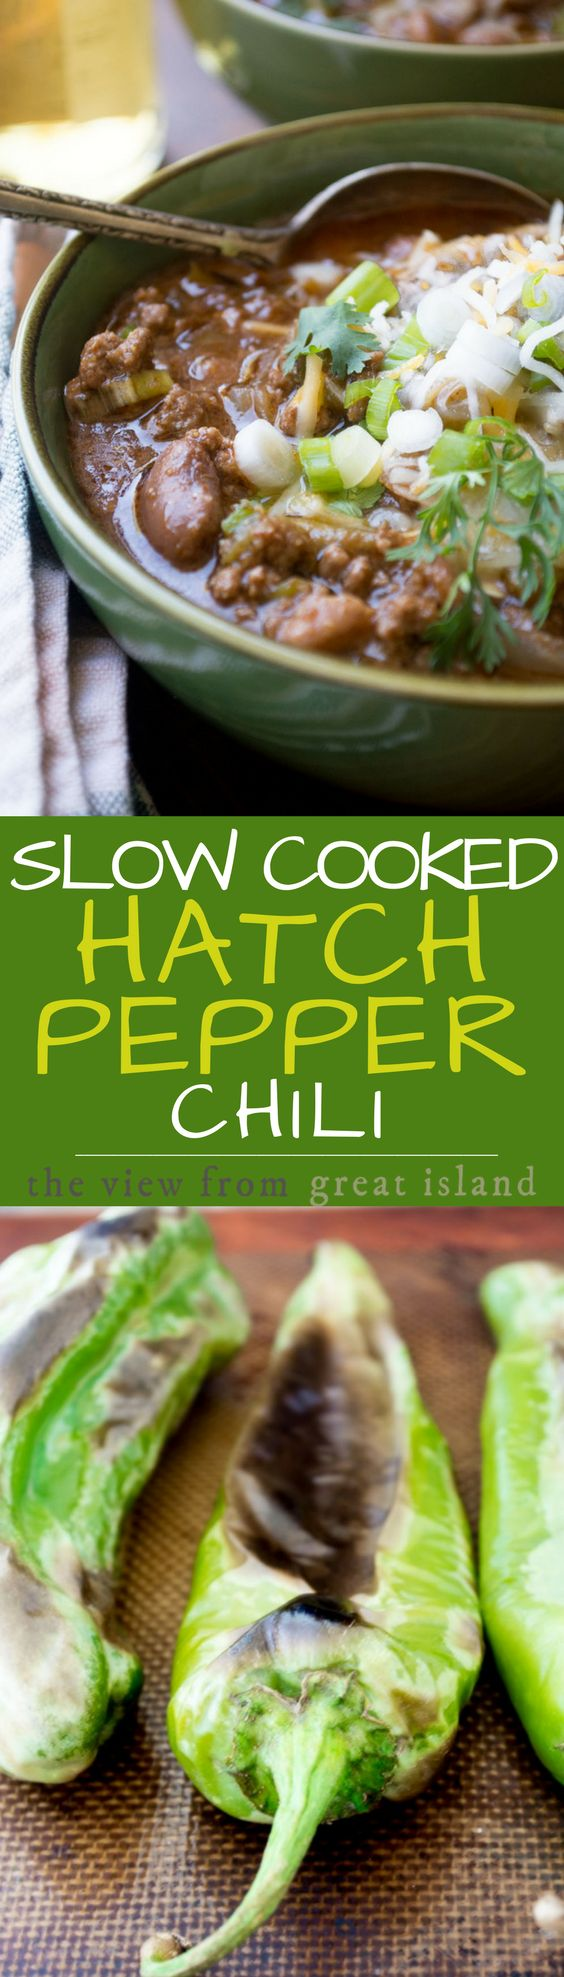 (Try this a man pleasing 2 meat -)Slow Cooked Hatch Pepper Chili ~ this lush chili is perfect for the summer months when fresh Hatch chiles from New Mexico are available ~ but use canned or frozen chiles the rest of the year so you don't miss this amazing slow cooked meal. | crock pot | stews | New mexican chili | Hatch chili peppers |